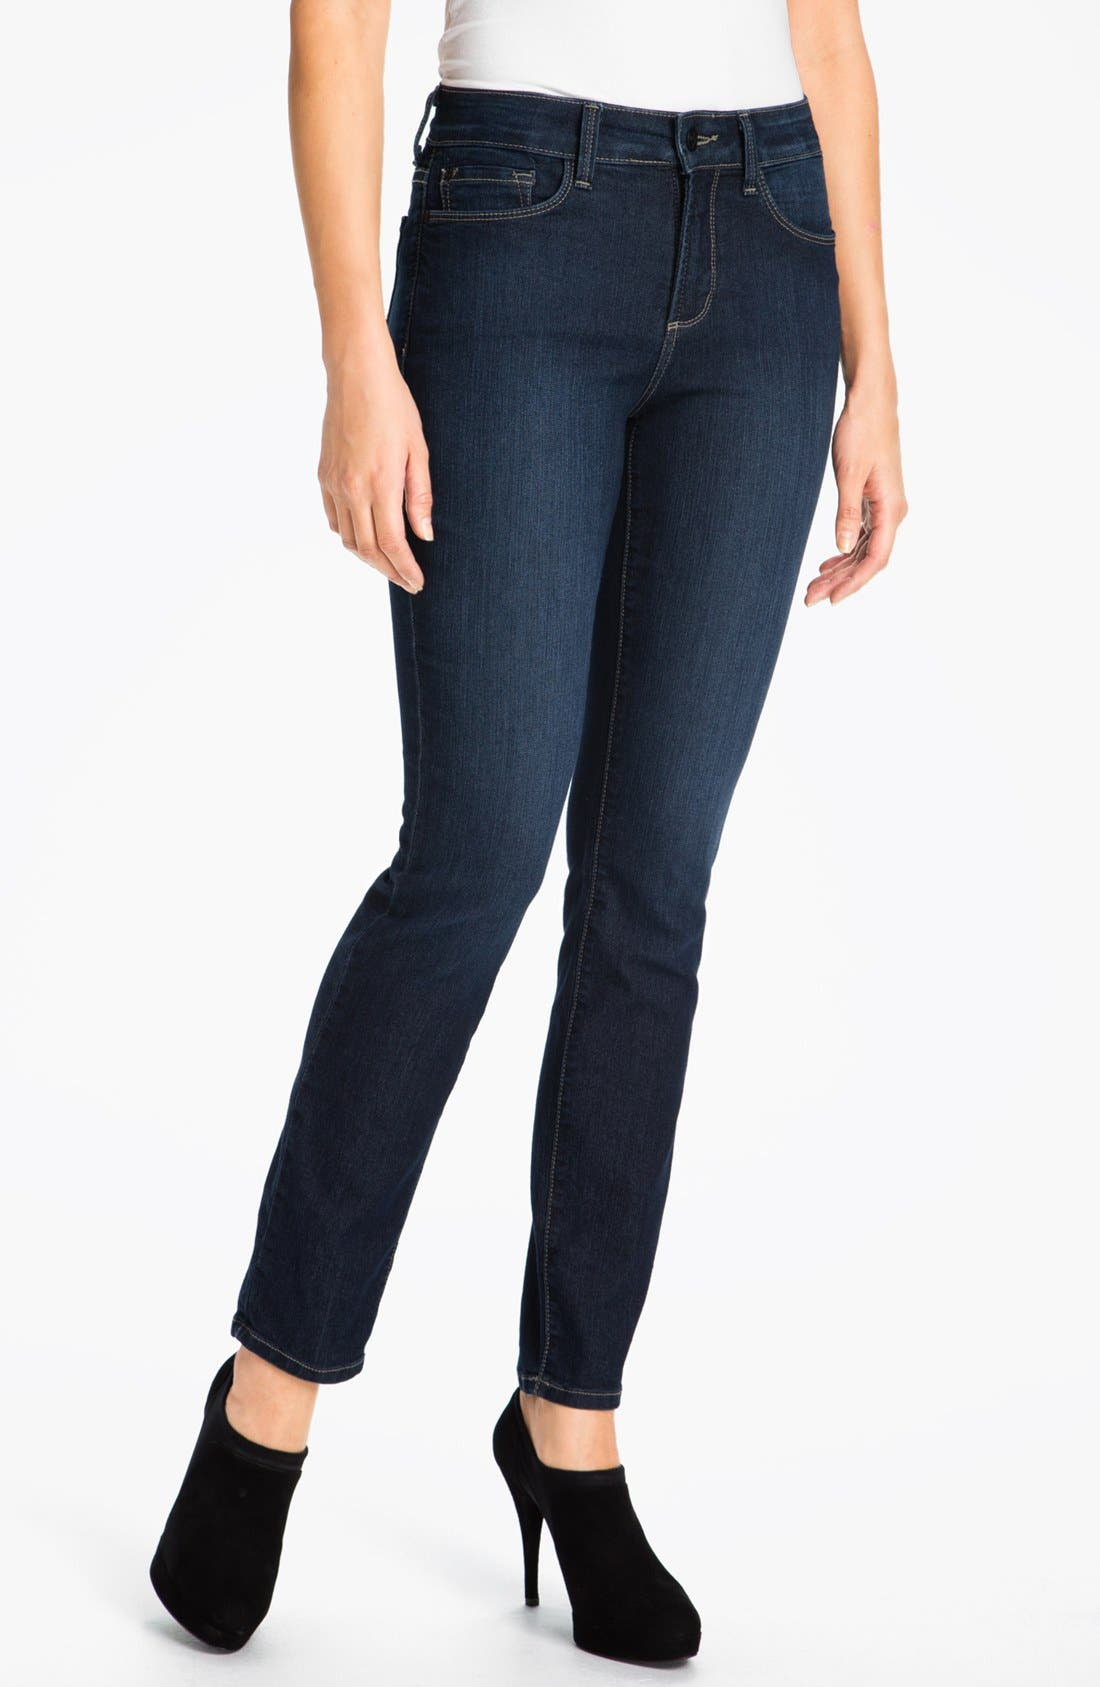 Alternate Image 1 Selected - NYDJ 'Alina' Stretch Skinny Jeans (Hollywood)